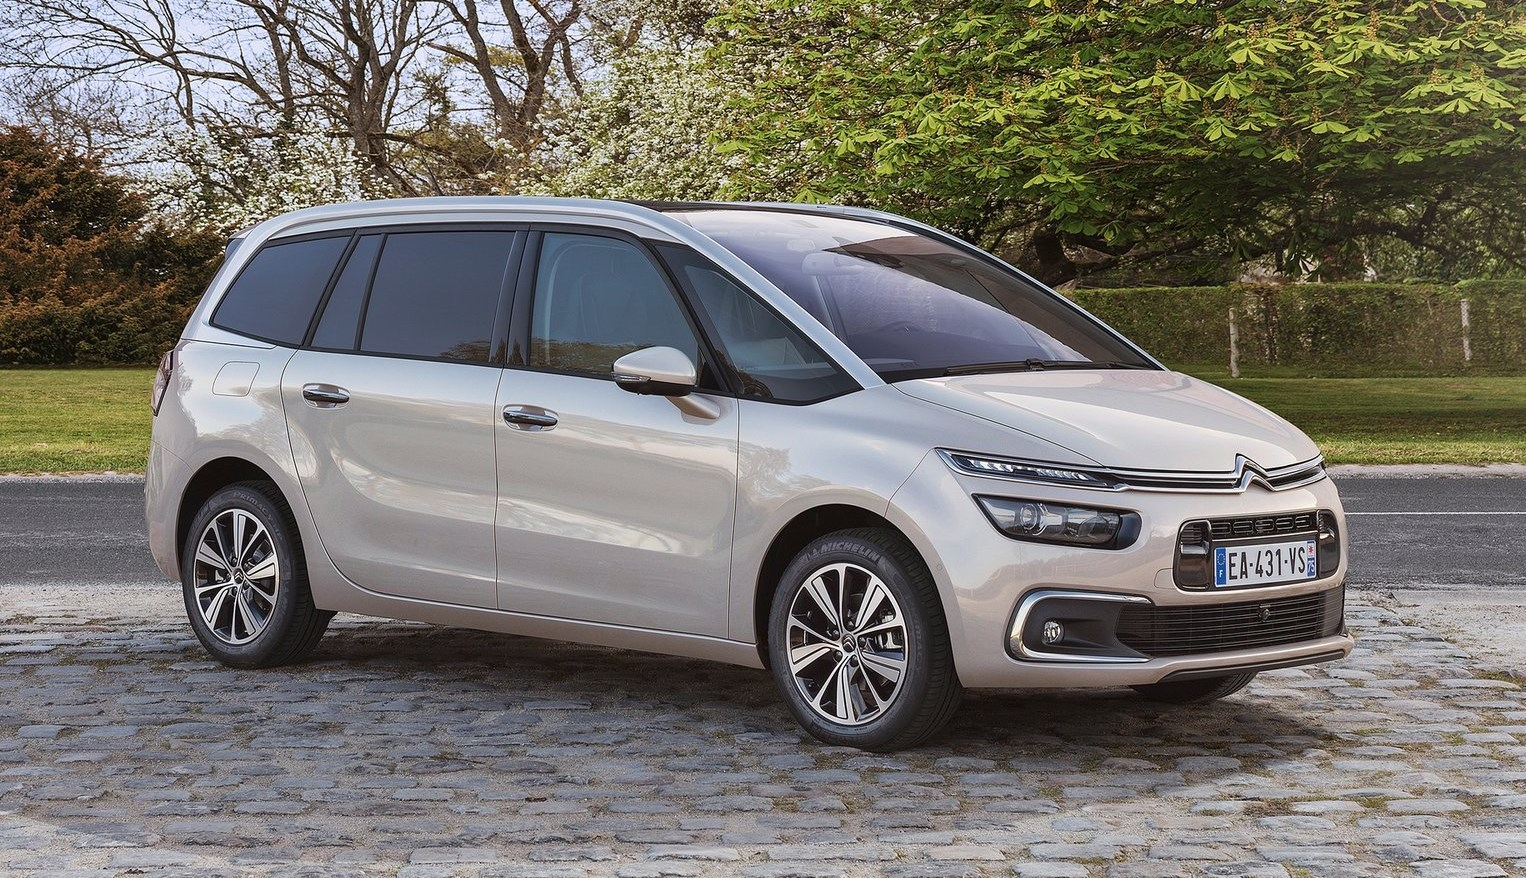 2019 Citroen C4 Aircross photo - 2